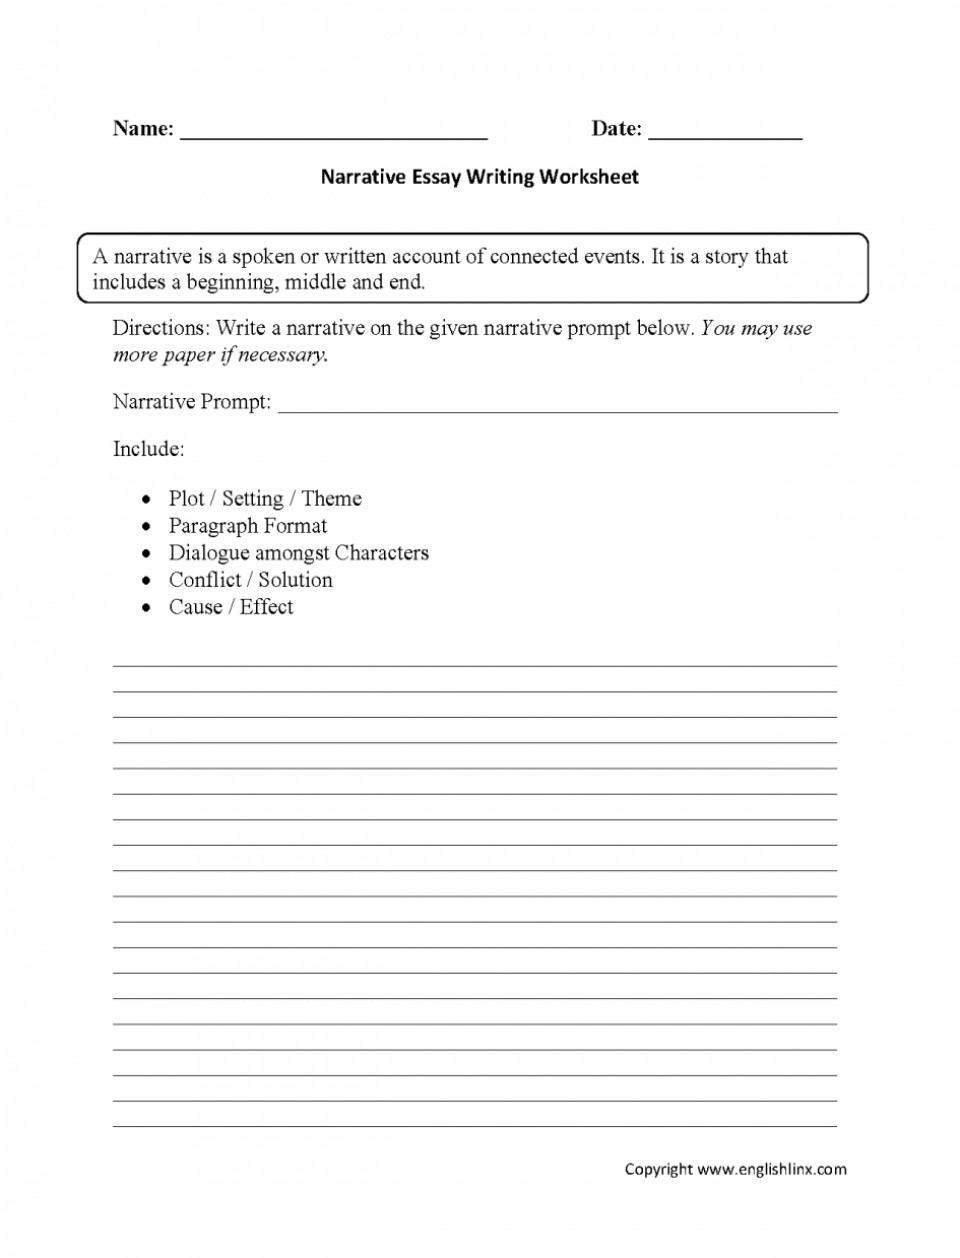 002 Essay Grader Example 3rd Grade Paragraph Writing Worksheets Download Free Third Printa Worksheet Awful Gre Python Grading Software 960